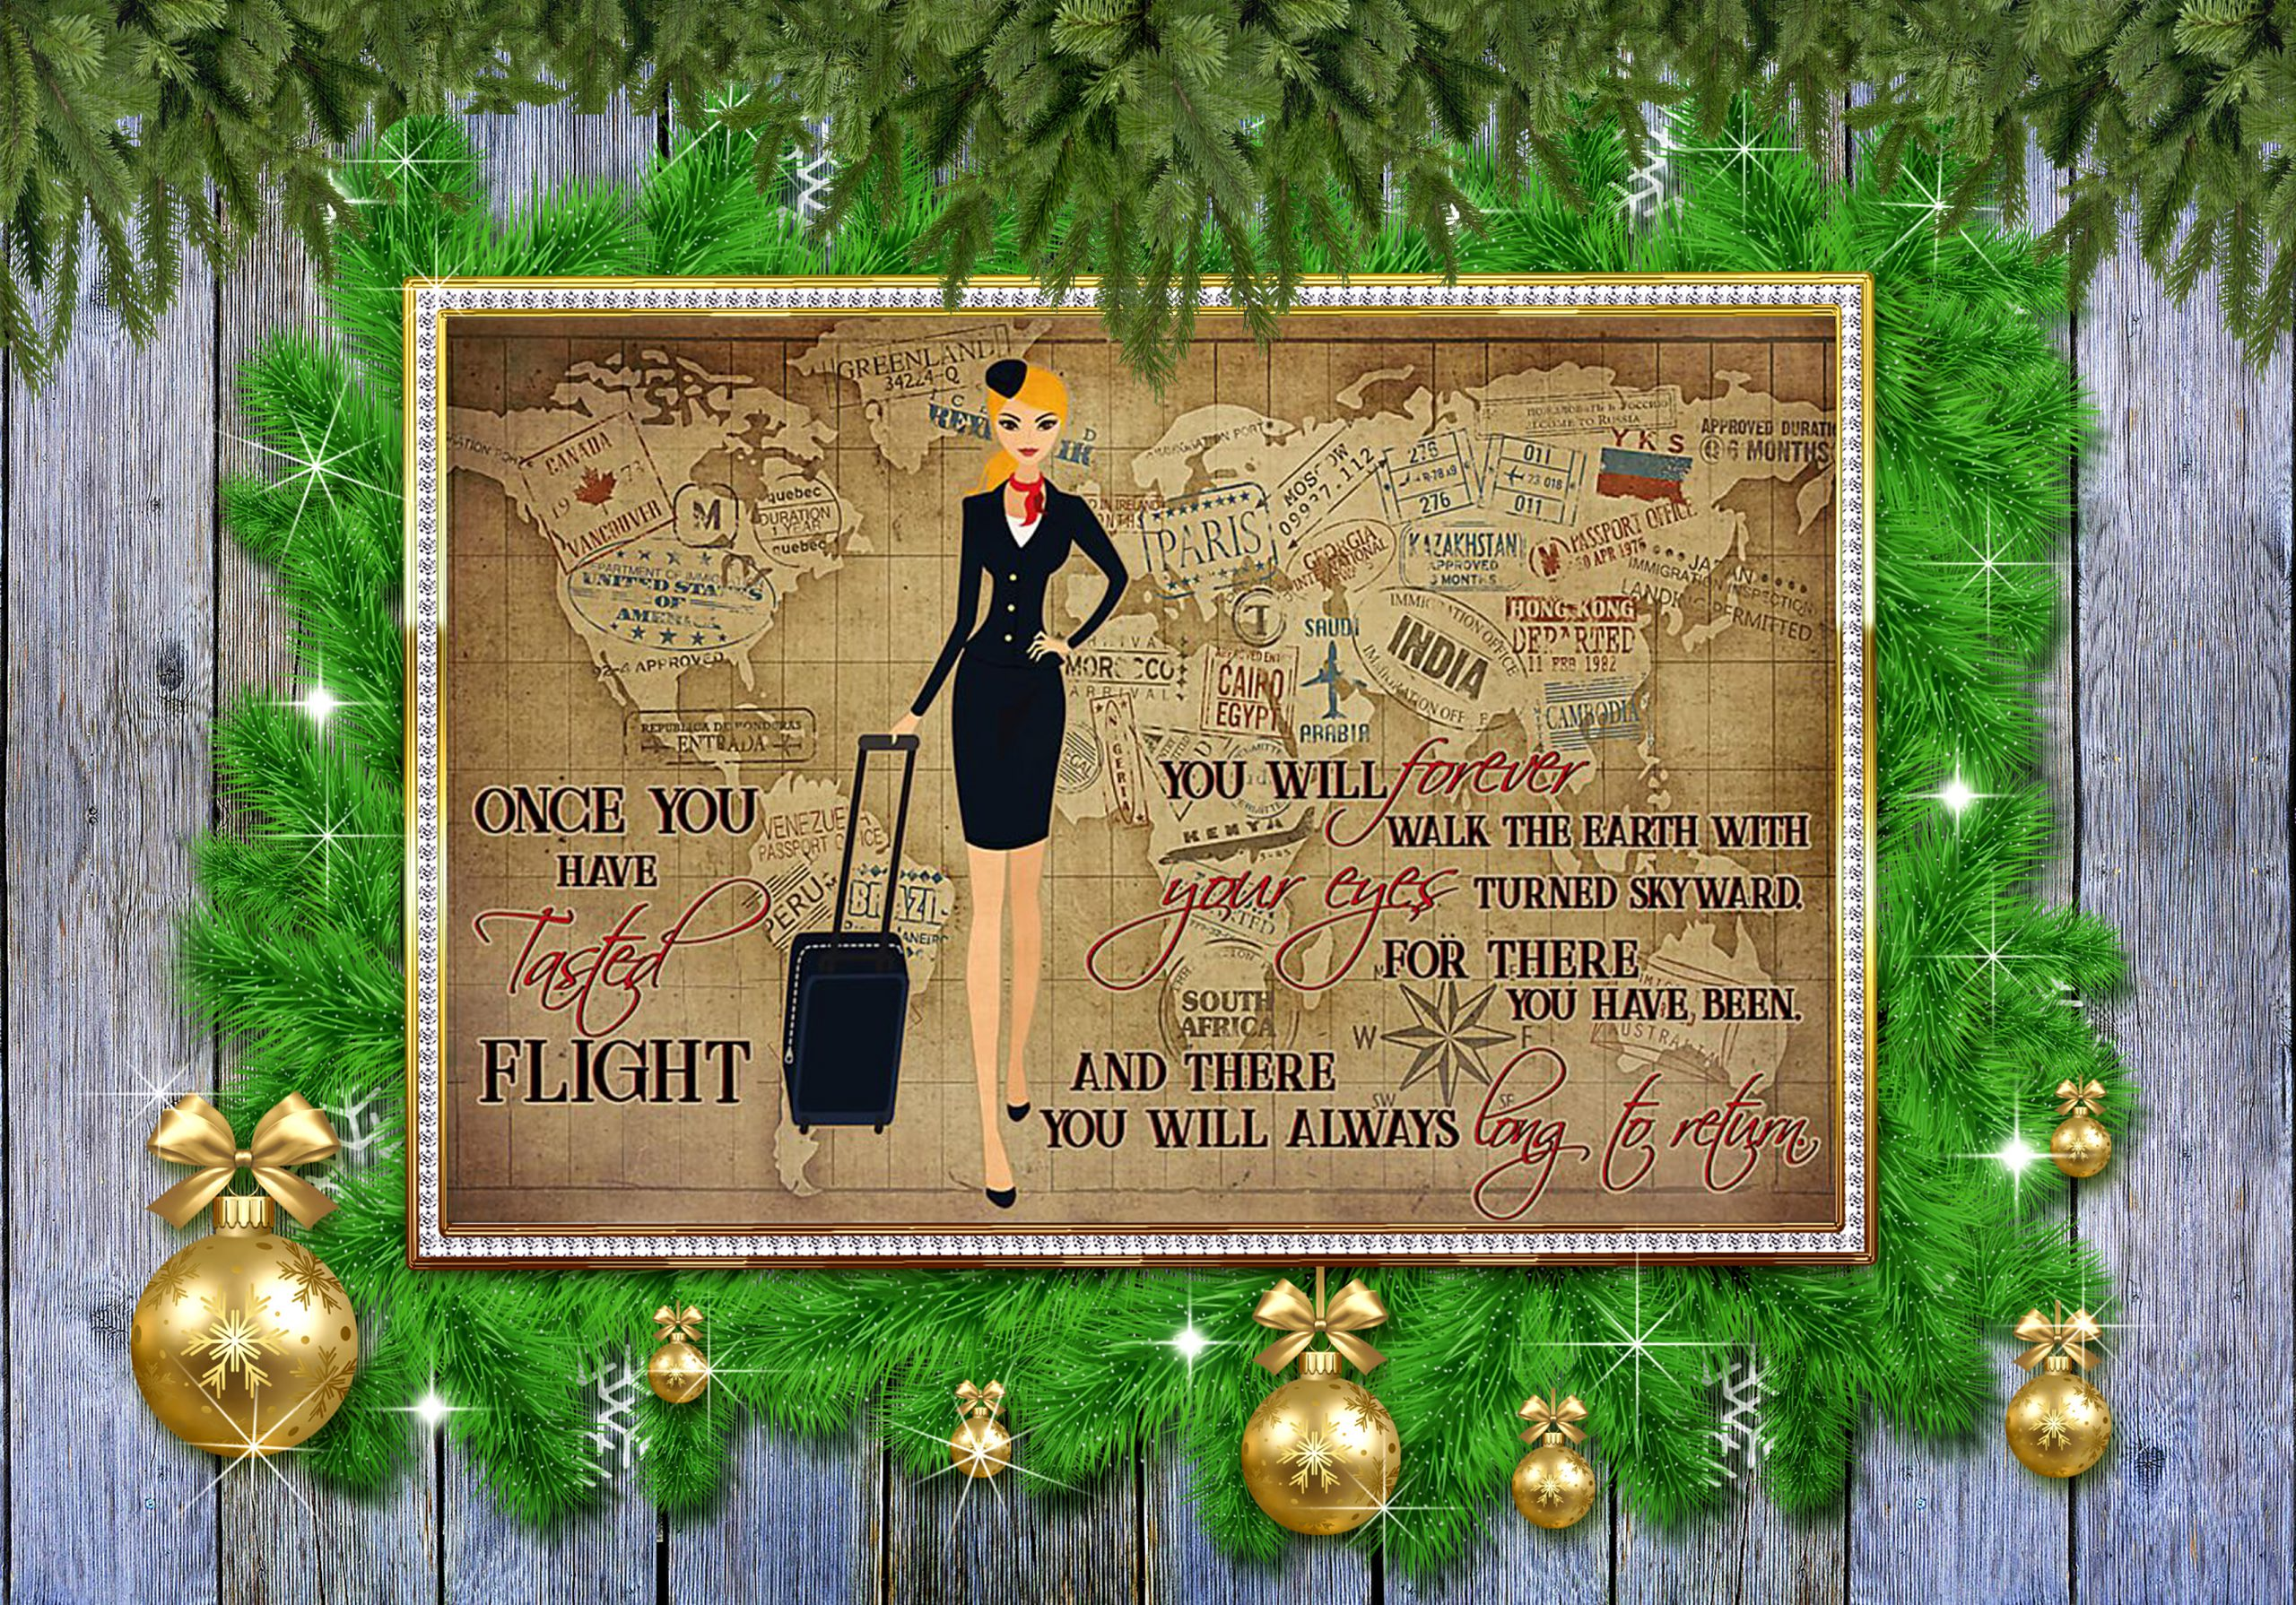 Once you have tasted flight you will forever walk the earth poster 1